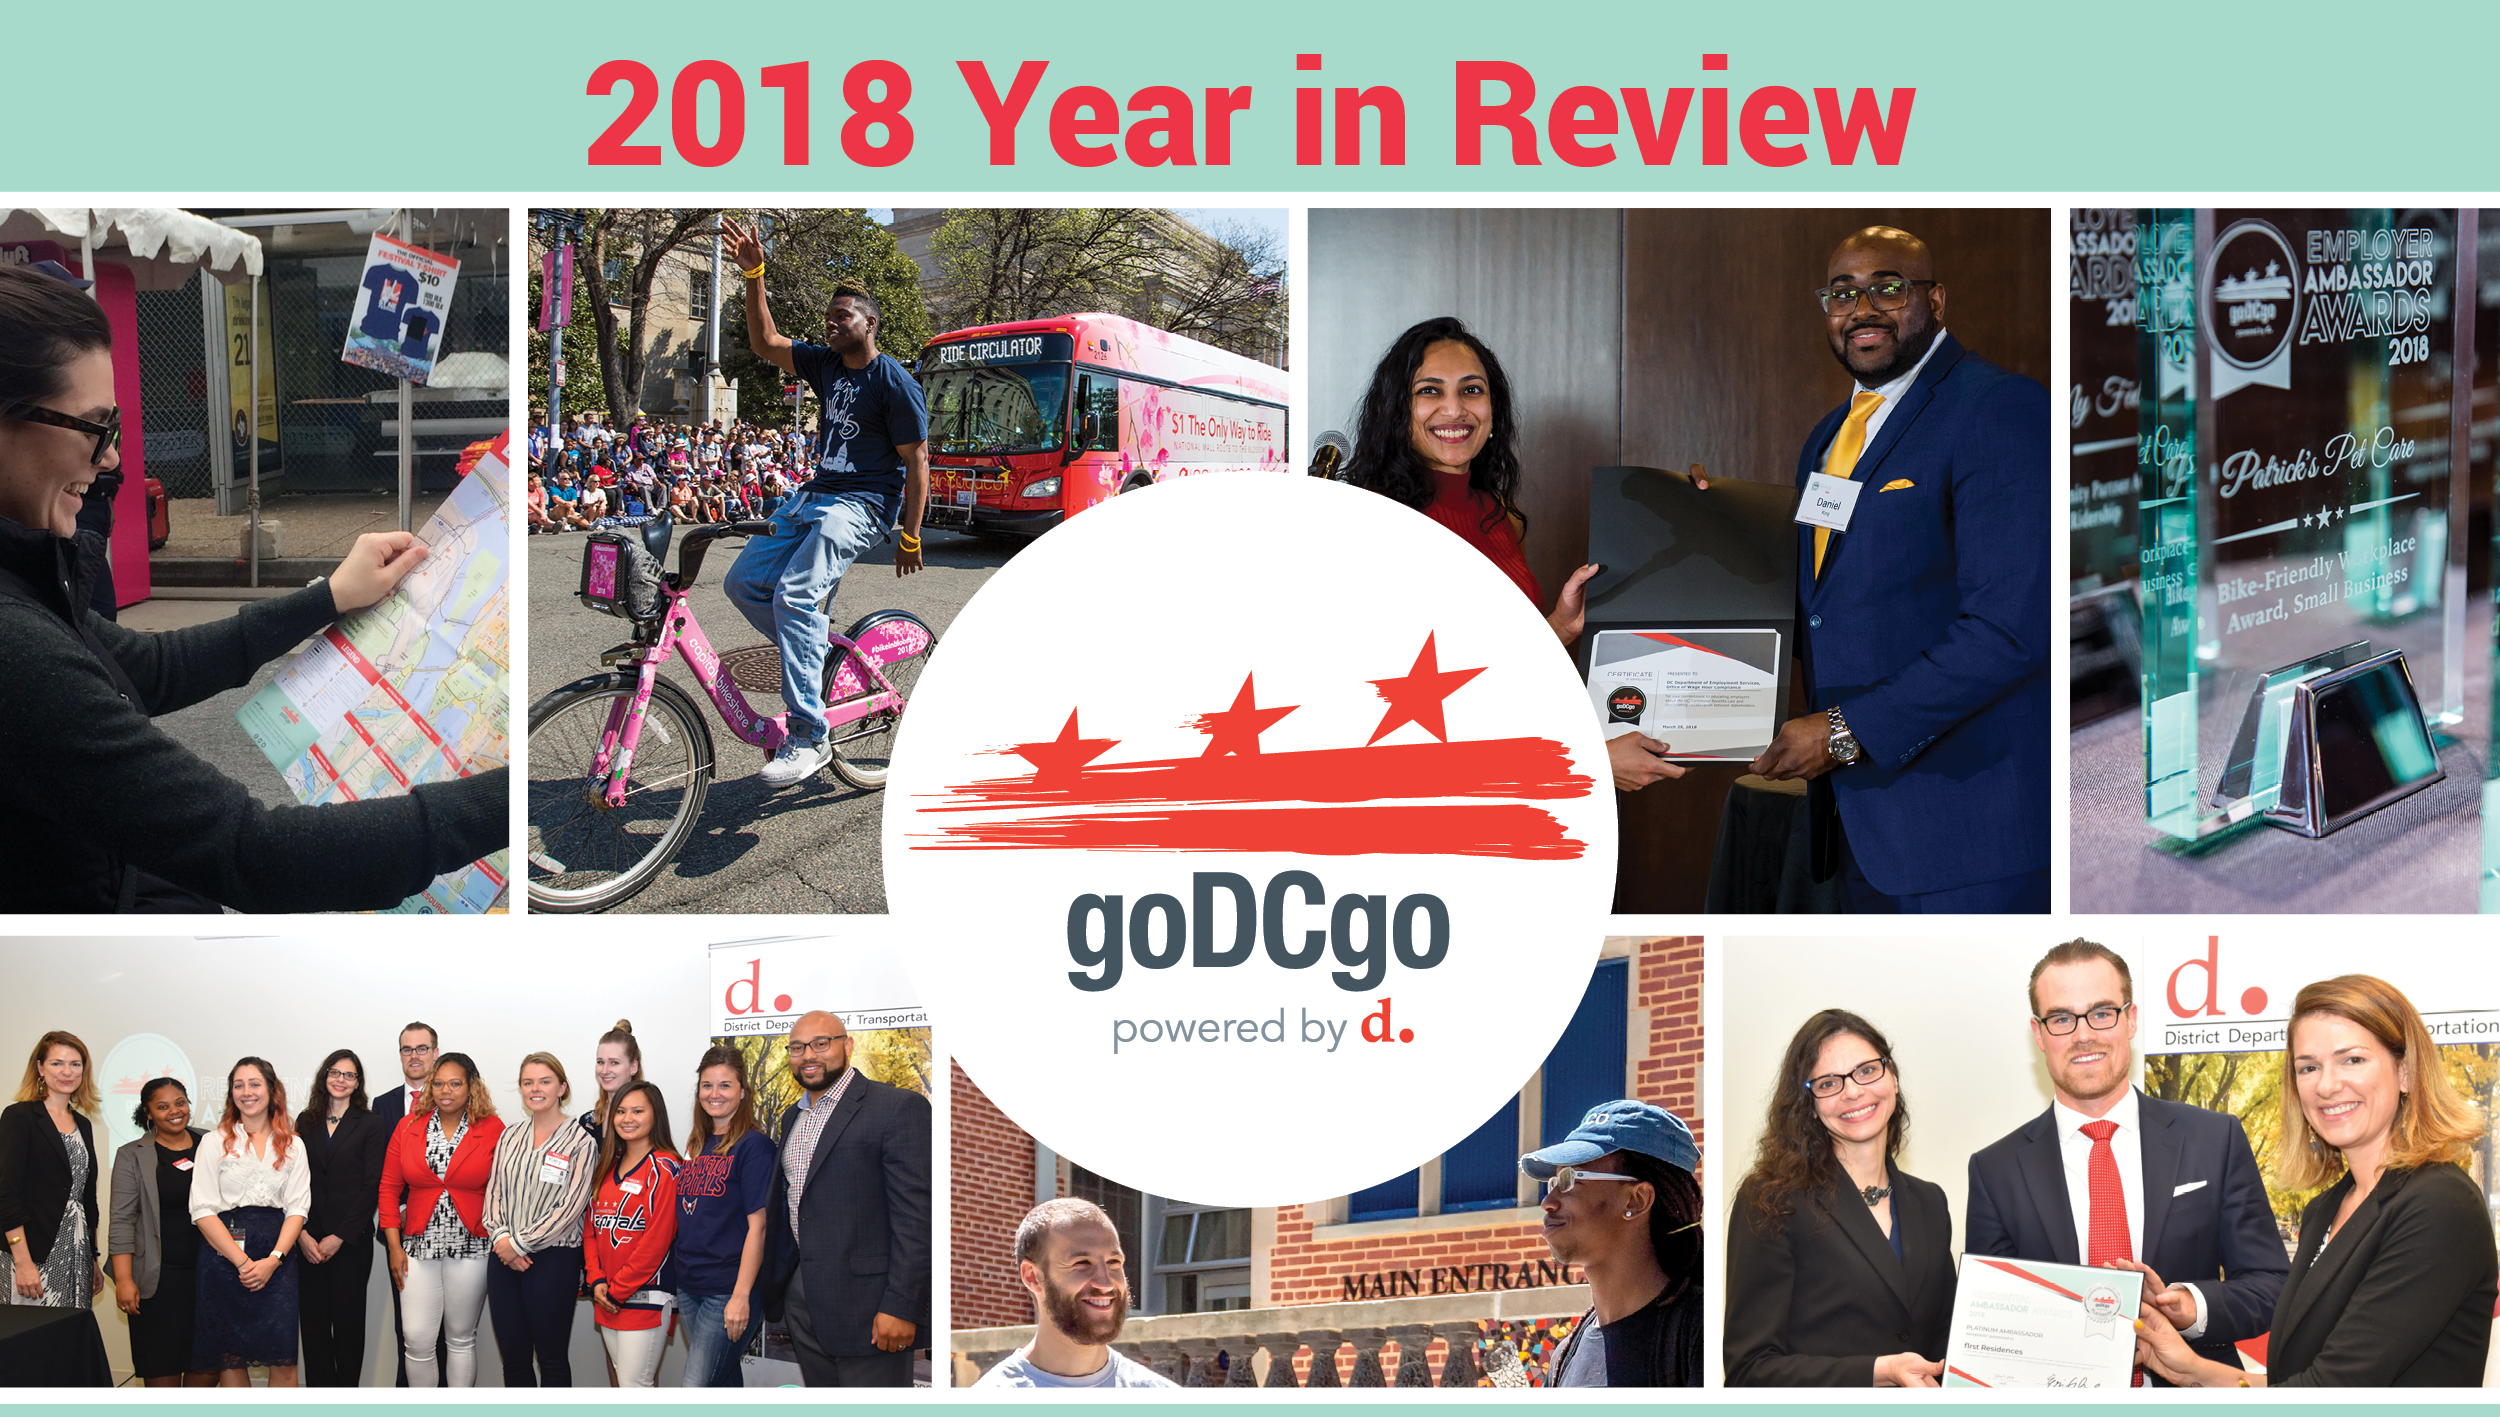 Thumbnail for goDCgo's 2018 Year in Review